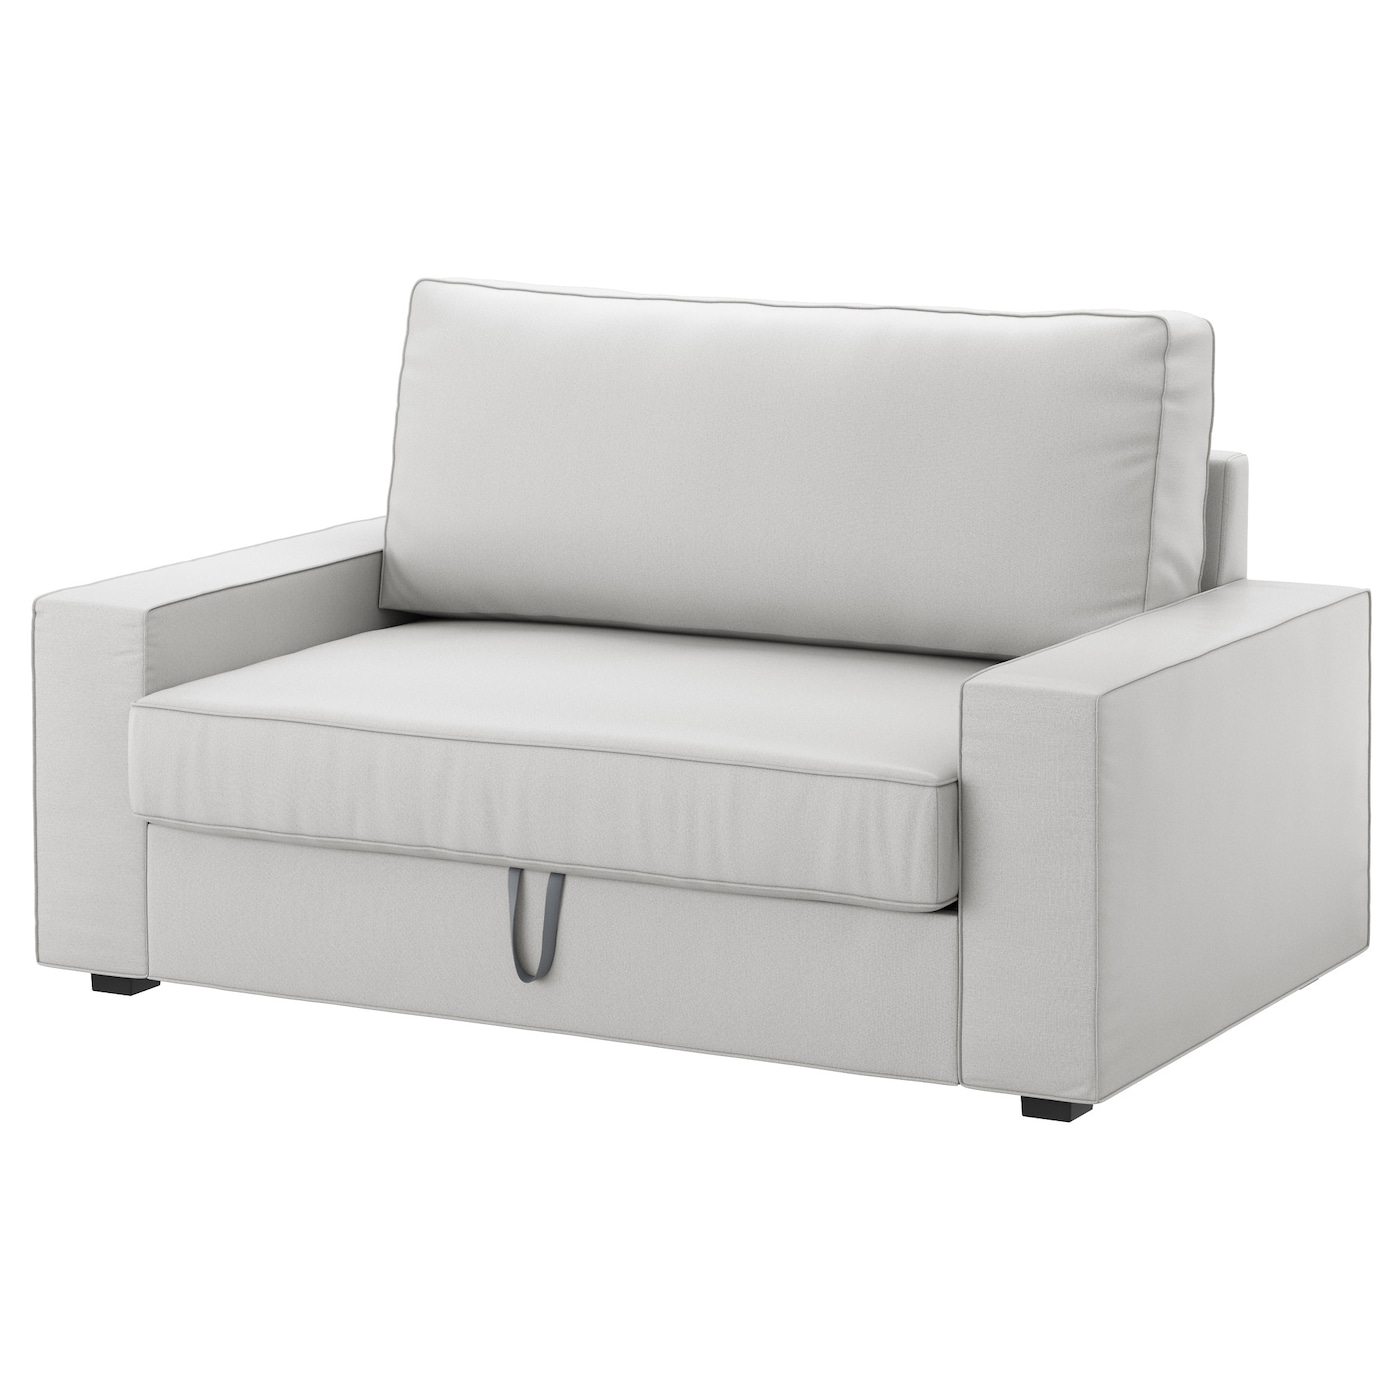 Vilasund two seat sofa bed ramna light grey ikea - Petit canape convertible 2 places pas cher ...